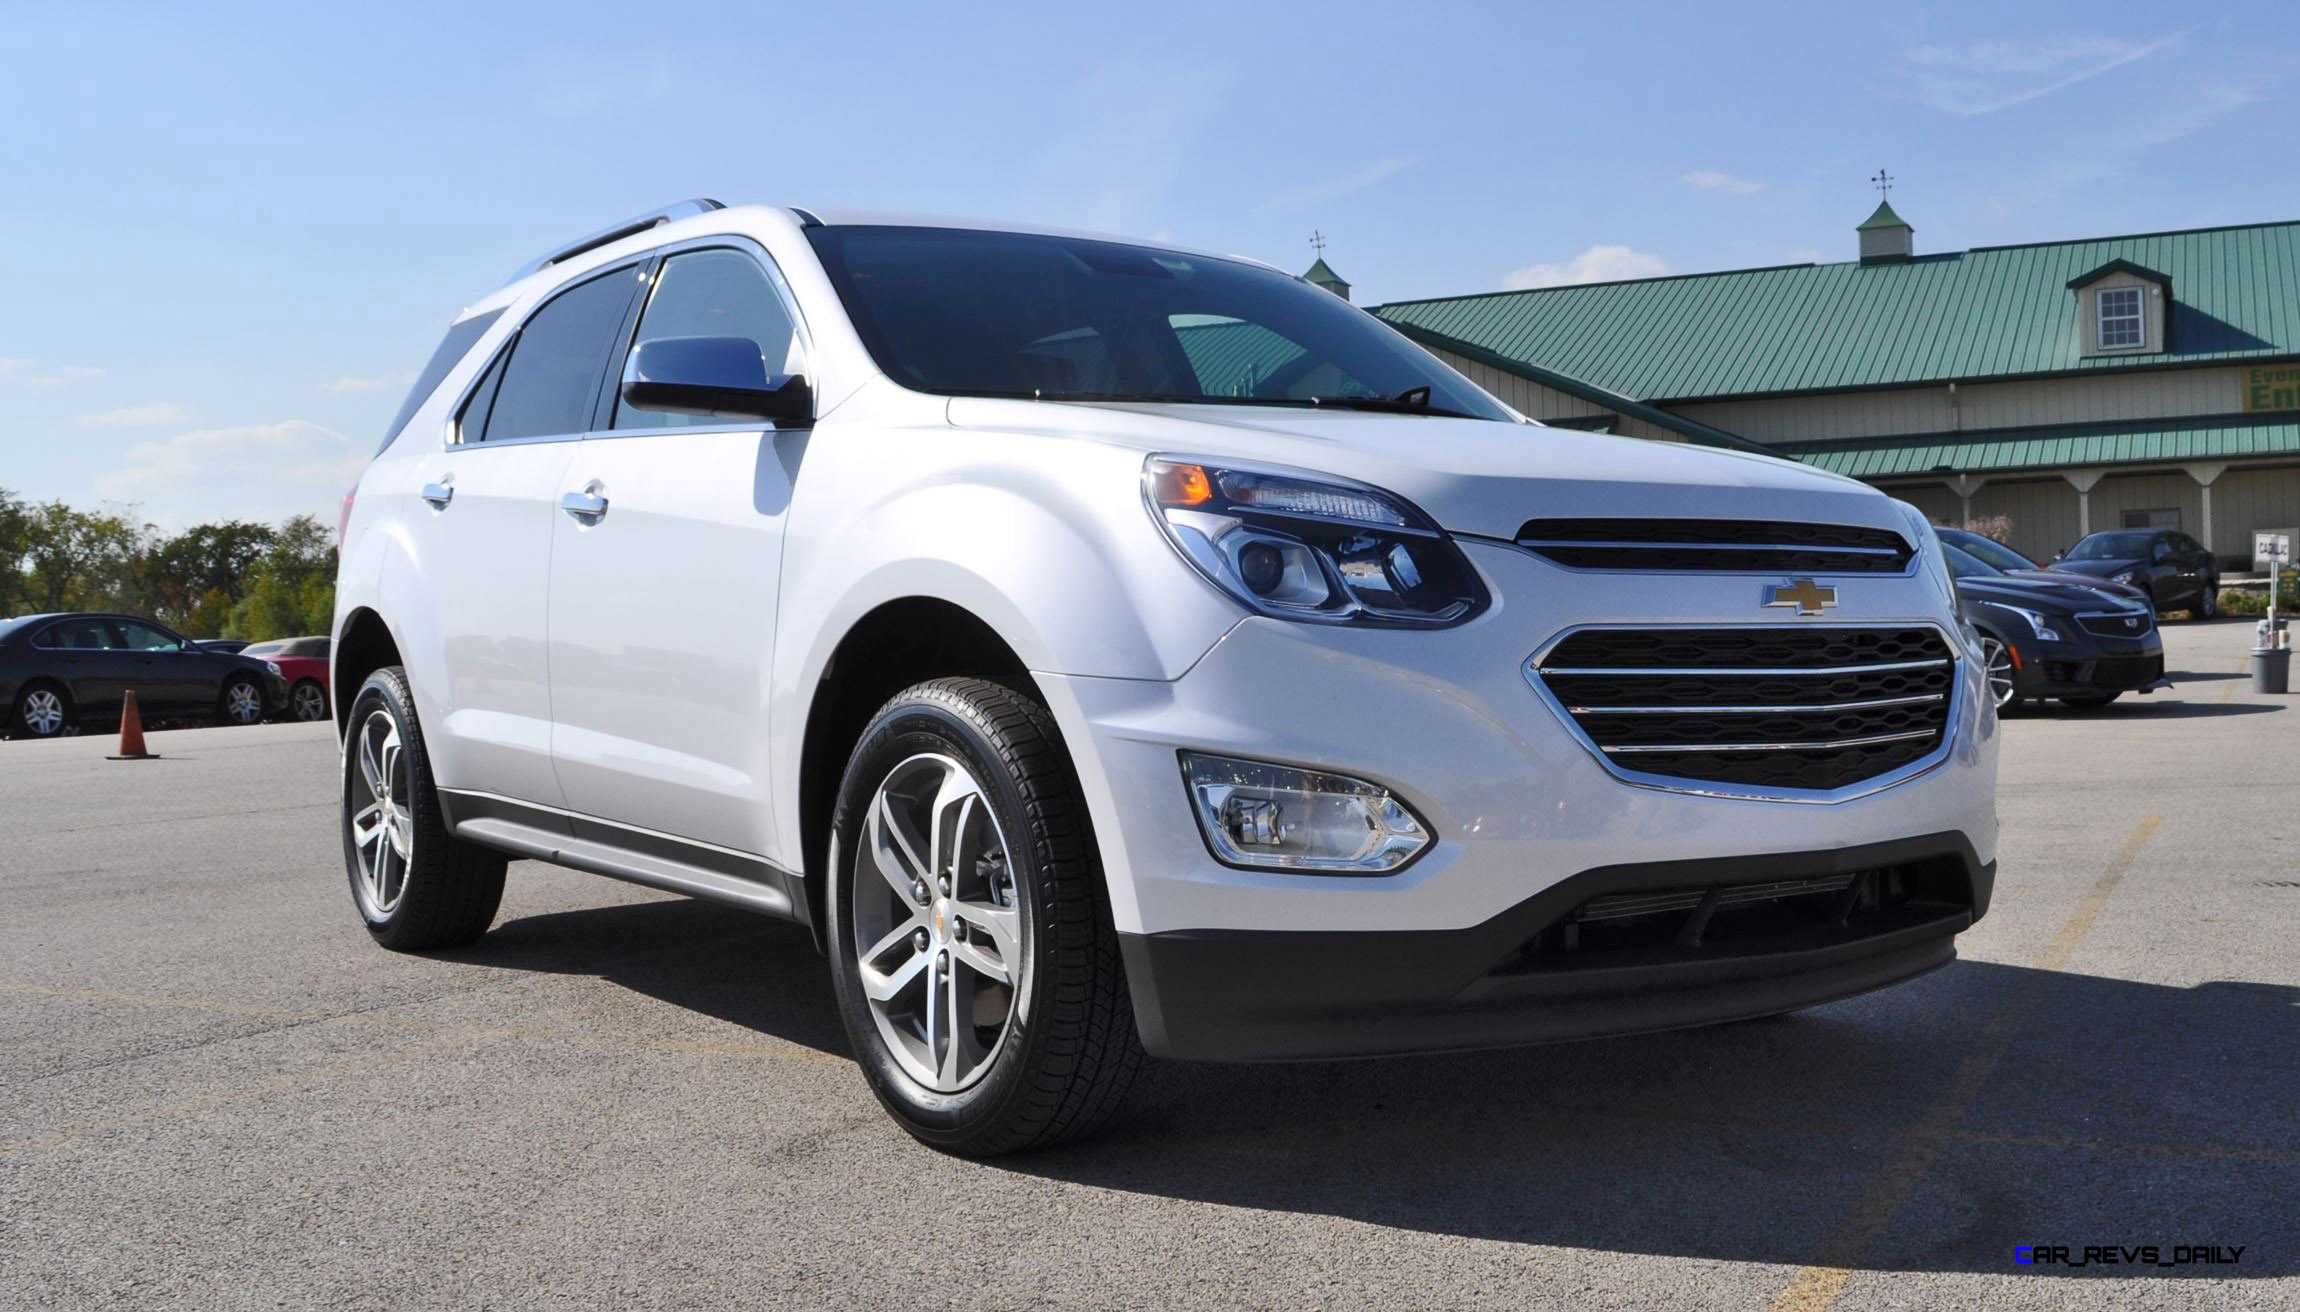 Luxury 2016 Chevrolet EQUINOX  First Look At New LEDs Nose And Interior